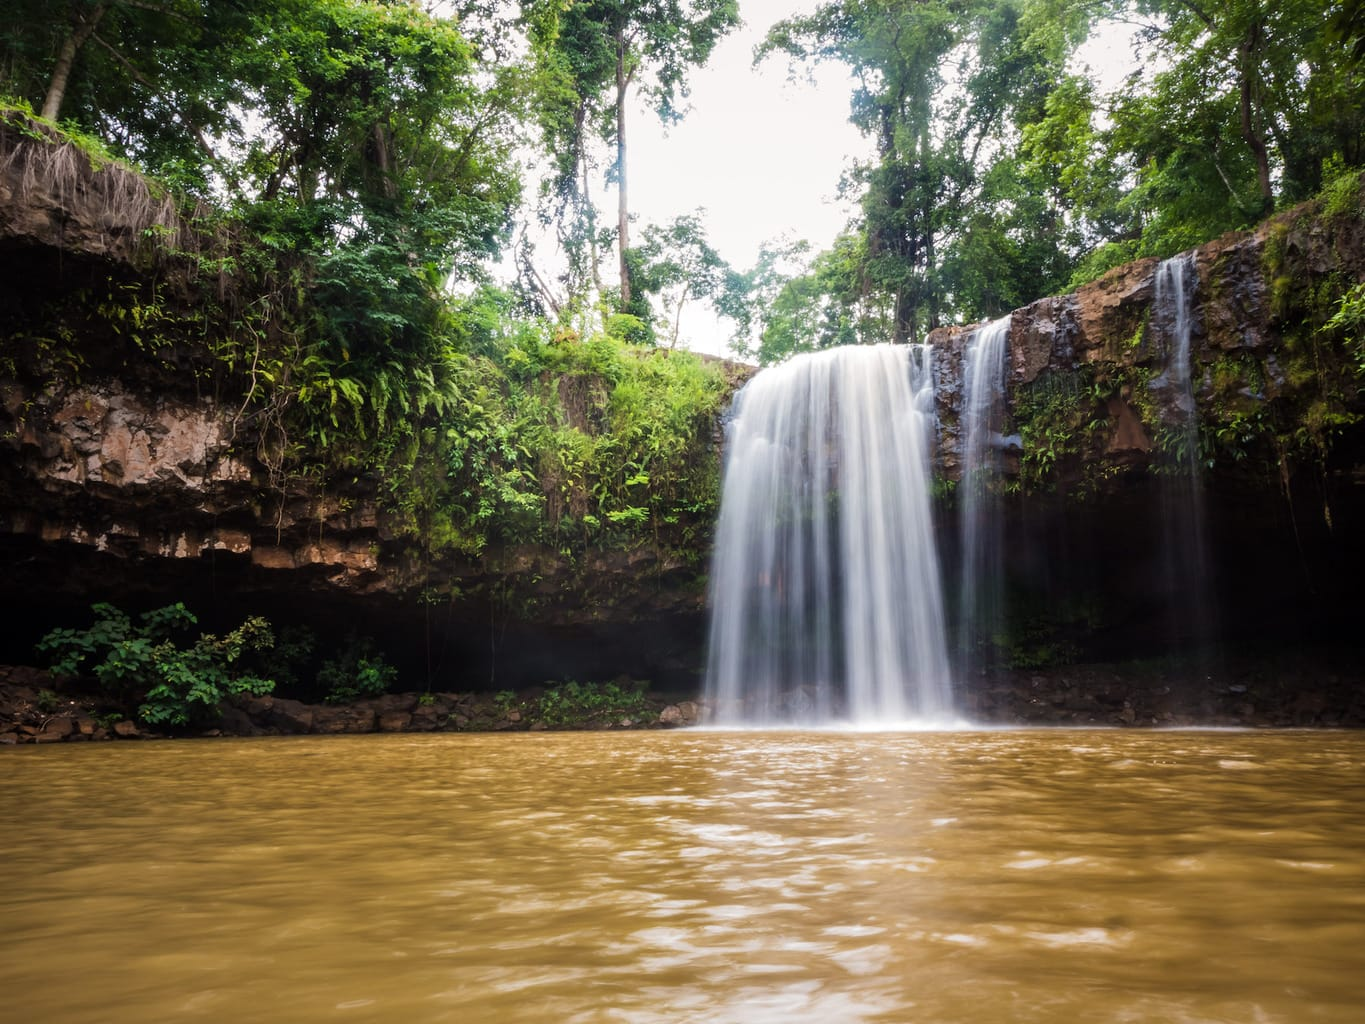 Waterfall in Ratanakiri